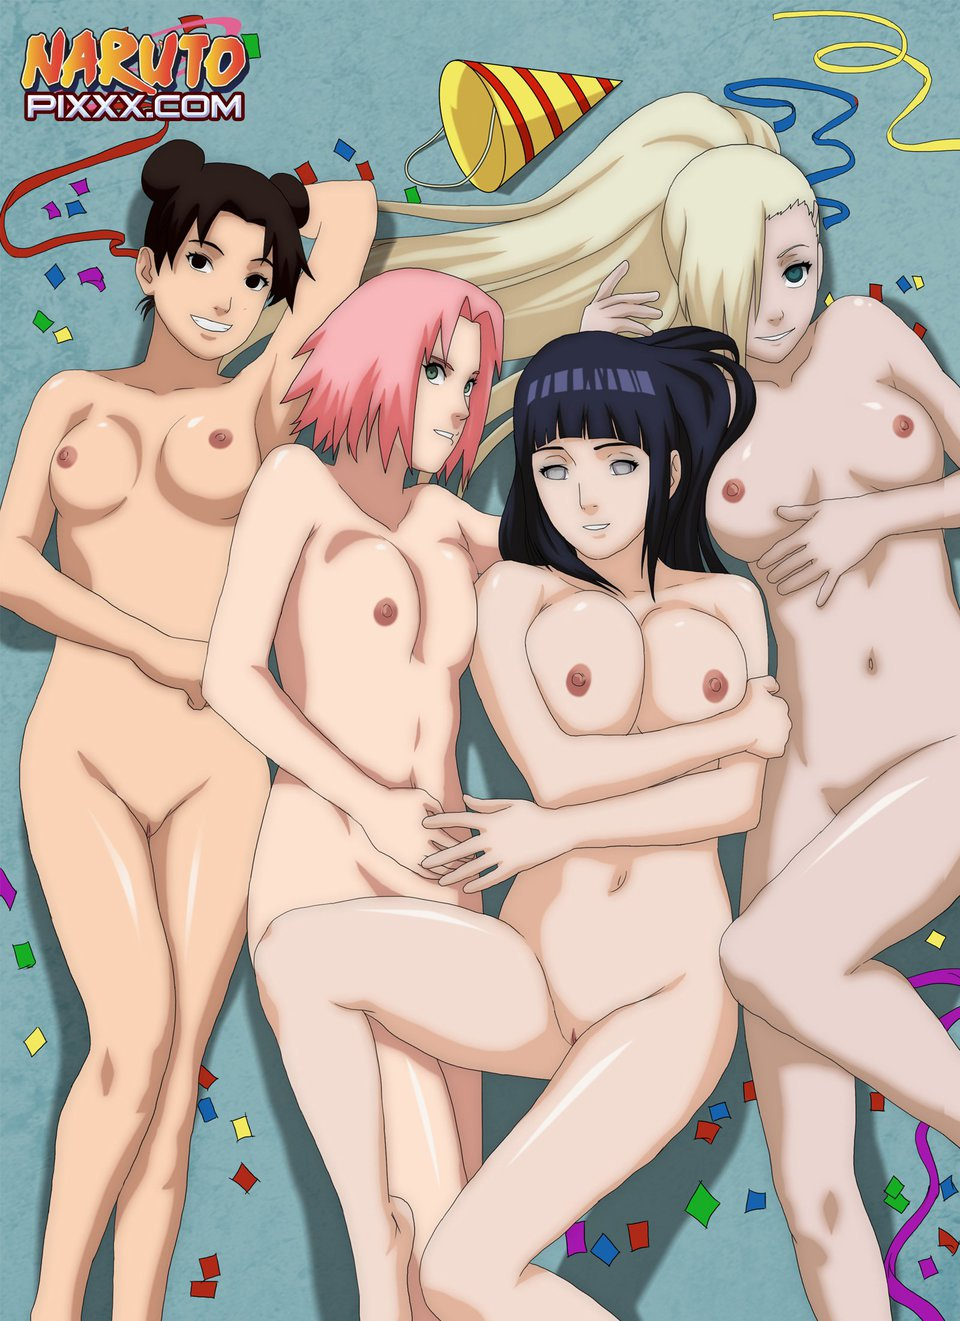 naruto hentai sakura and ino throughout showing porn images for hentai naruto ino sakura porn